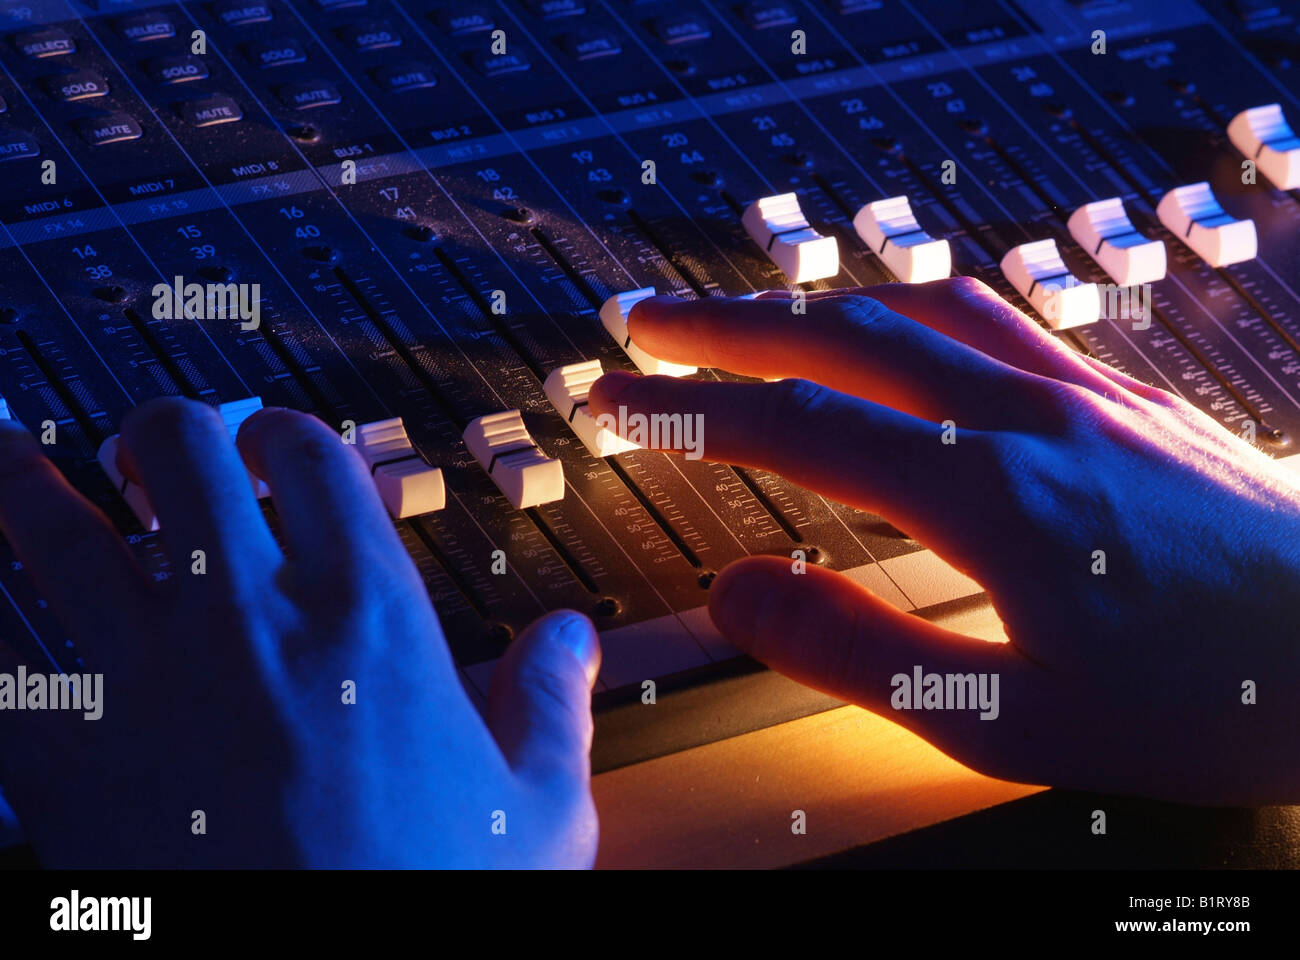 Hands of a sound engineer adjusting the regulators of a professional mixer unit - Stock Image